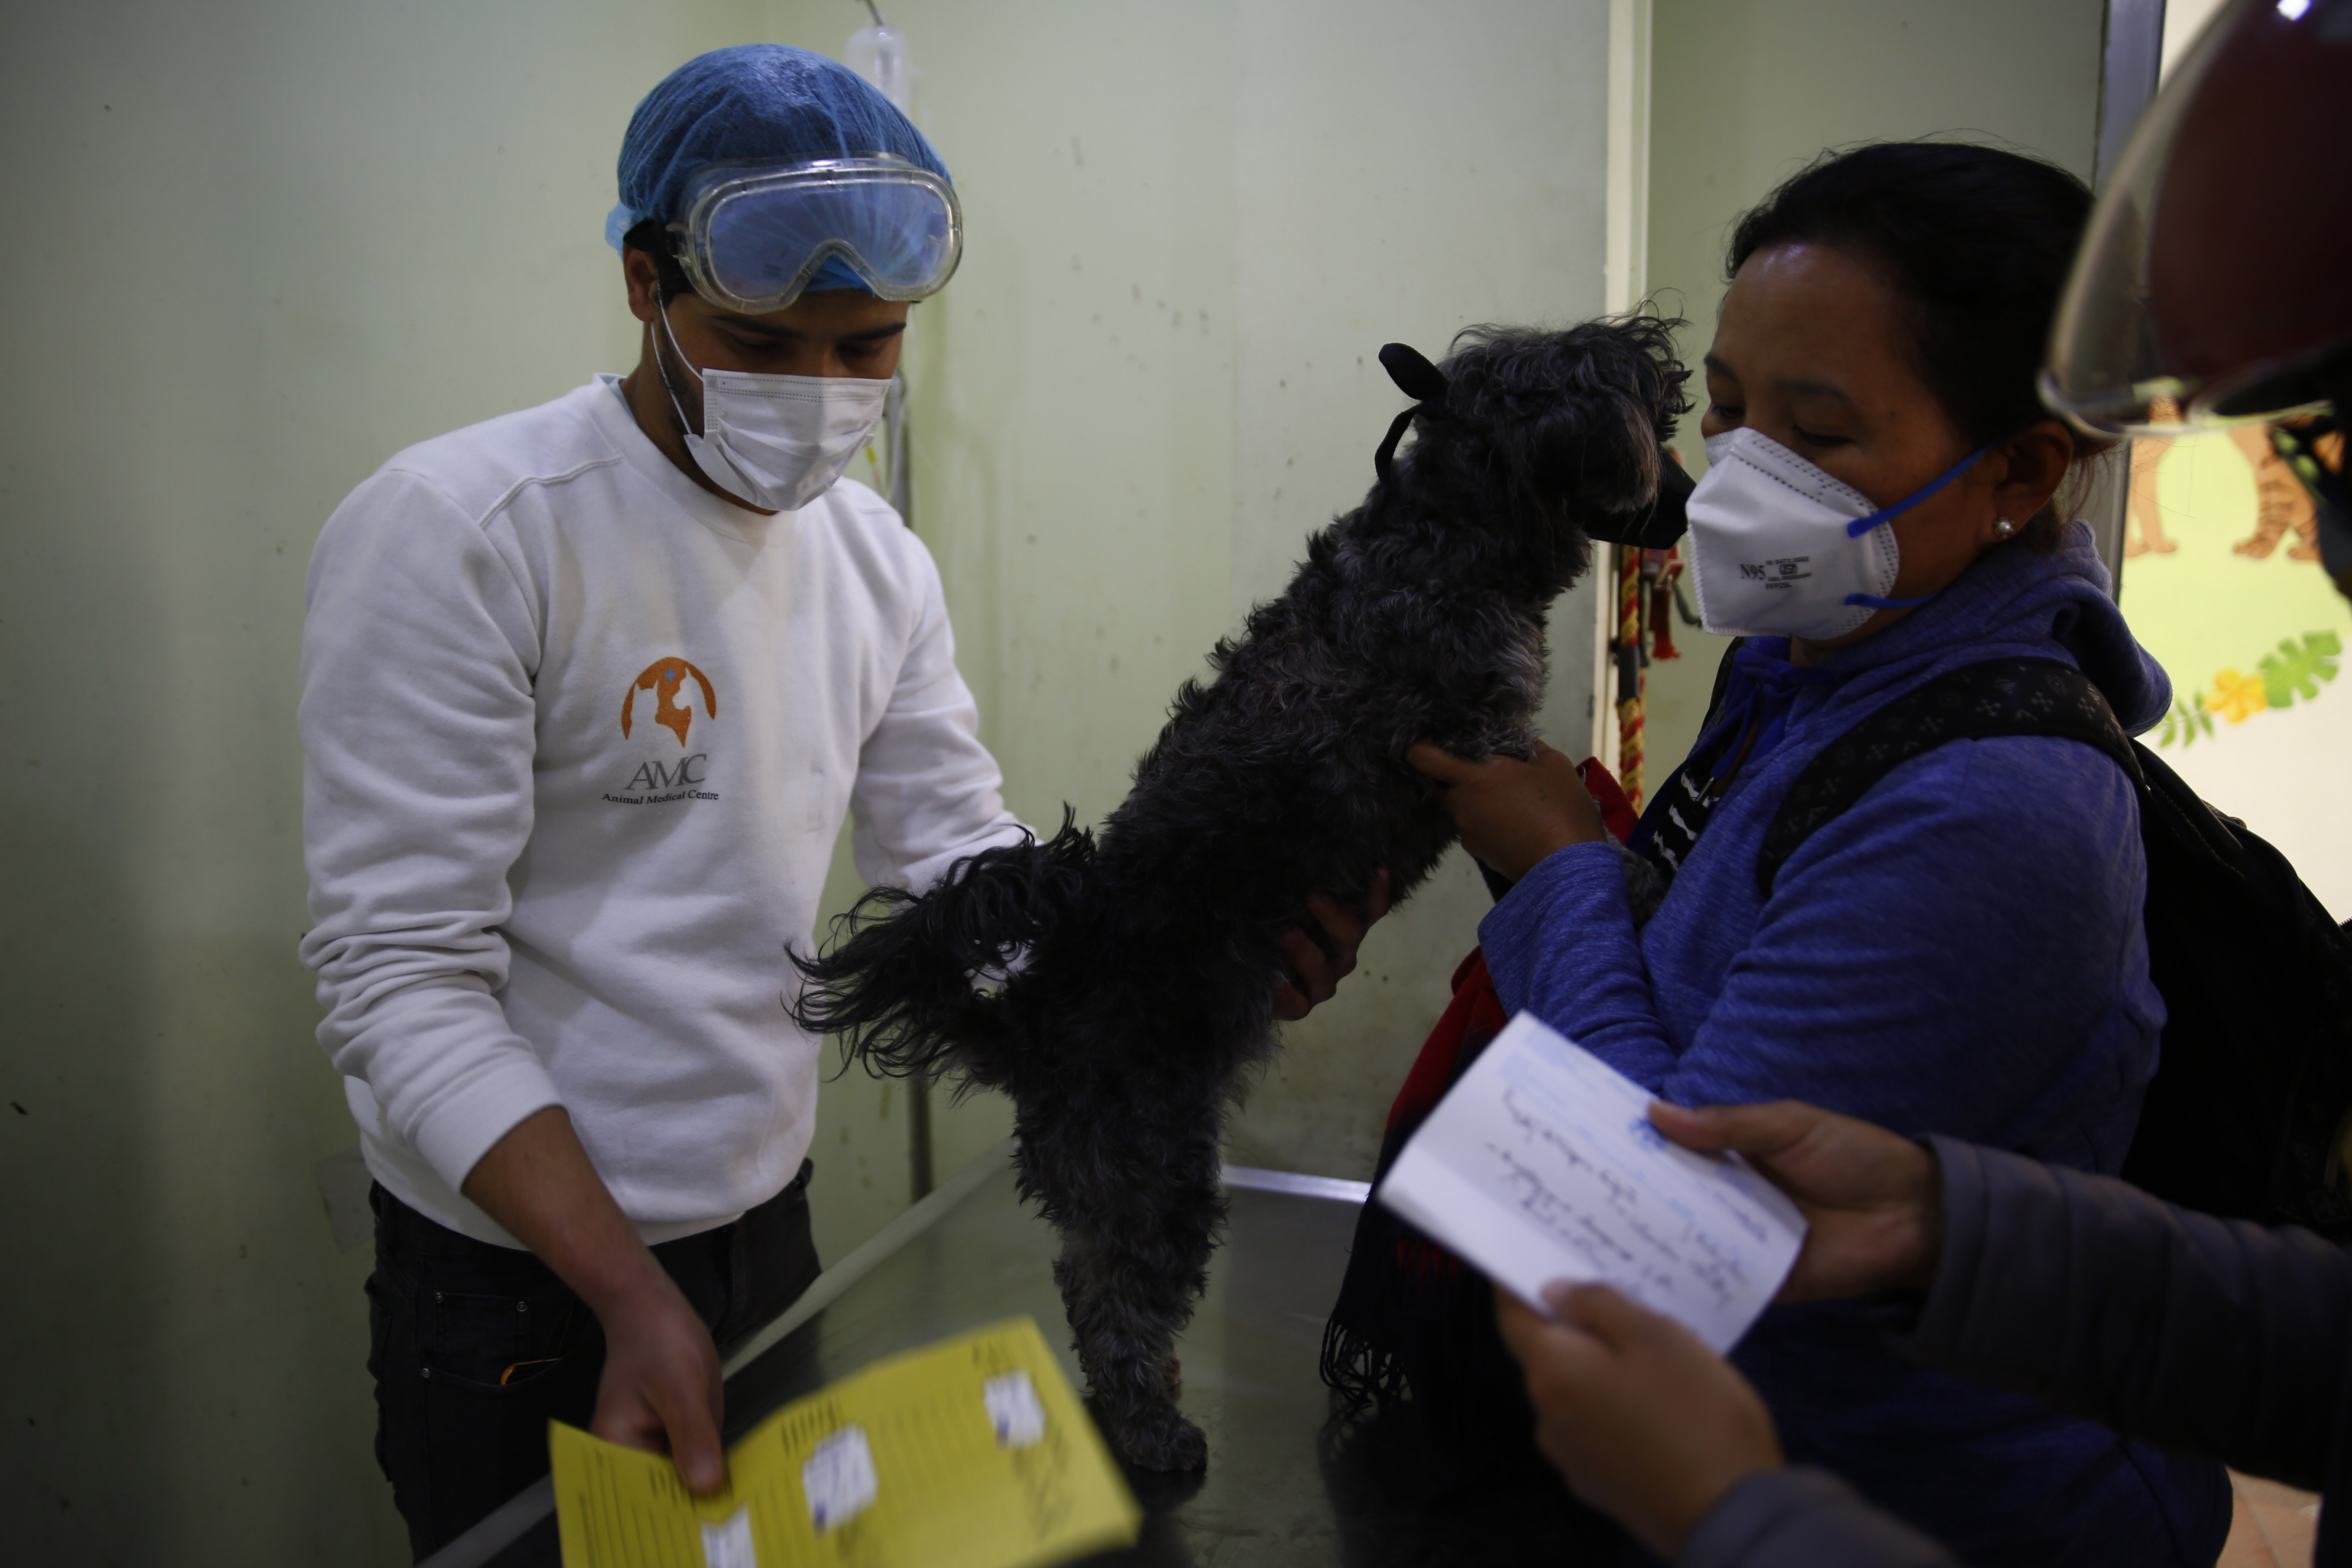 Dr Sushil Kumar Poudel examines a dog at Animal Medical Centre on the twelfth day of government imposed lockdown, amid concerns over the spread of COVID-19, at Bouddha, Kathmandu, on Saturday, April 04, 2020. Photo: Skanda Gautam/THT